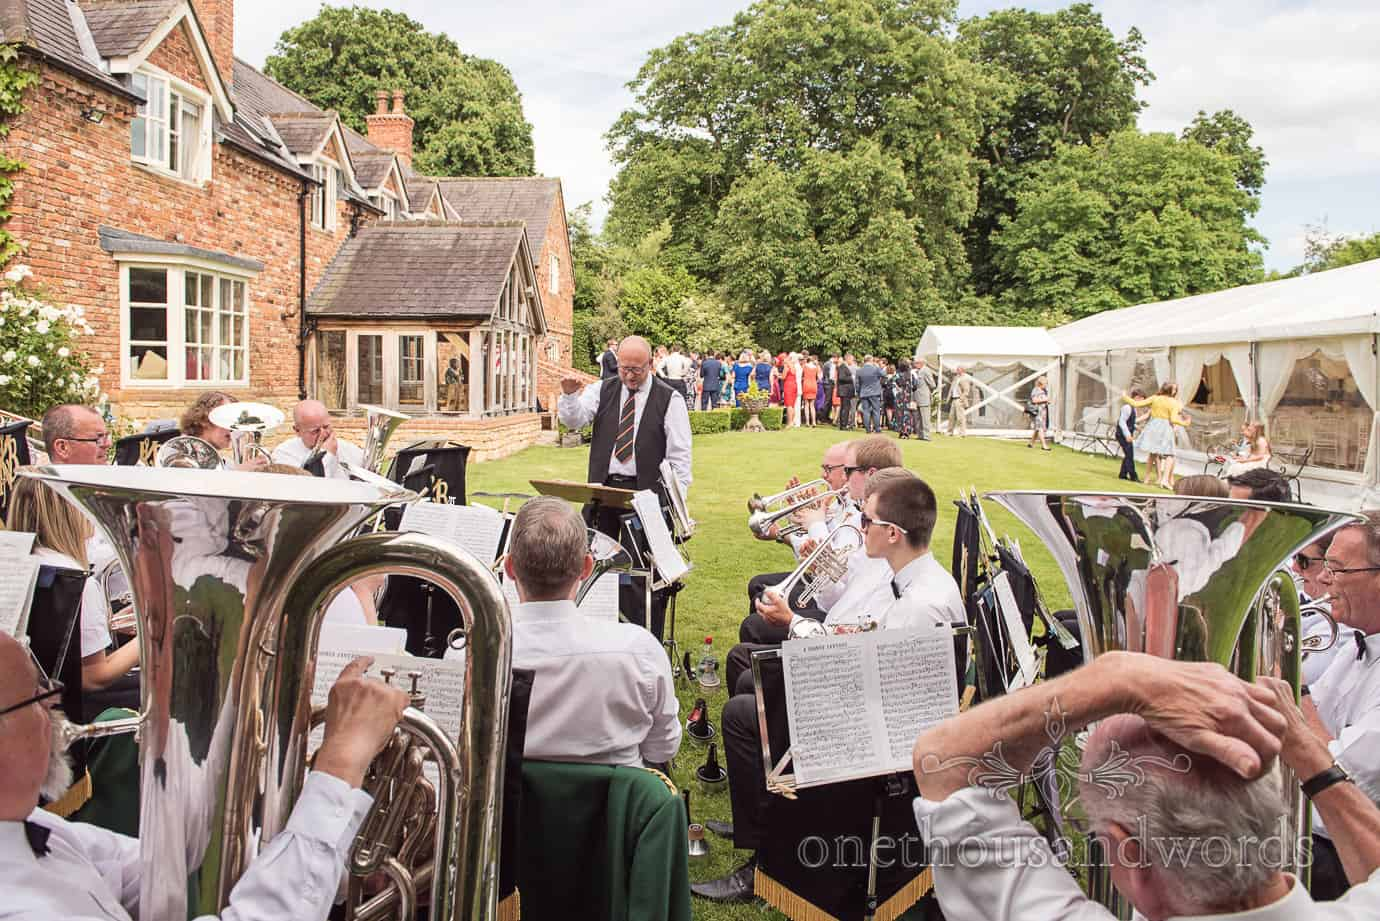 Brass band plays to wedding guests at country house marquee wedding